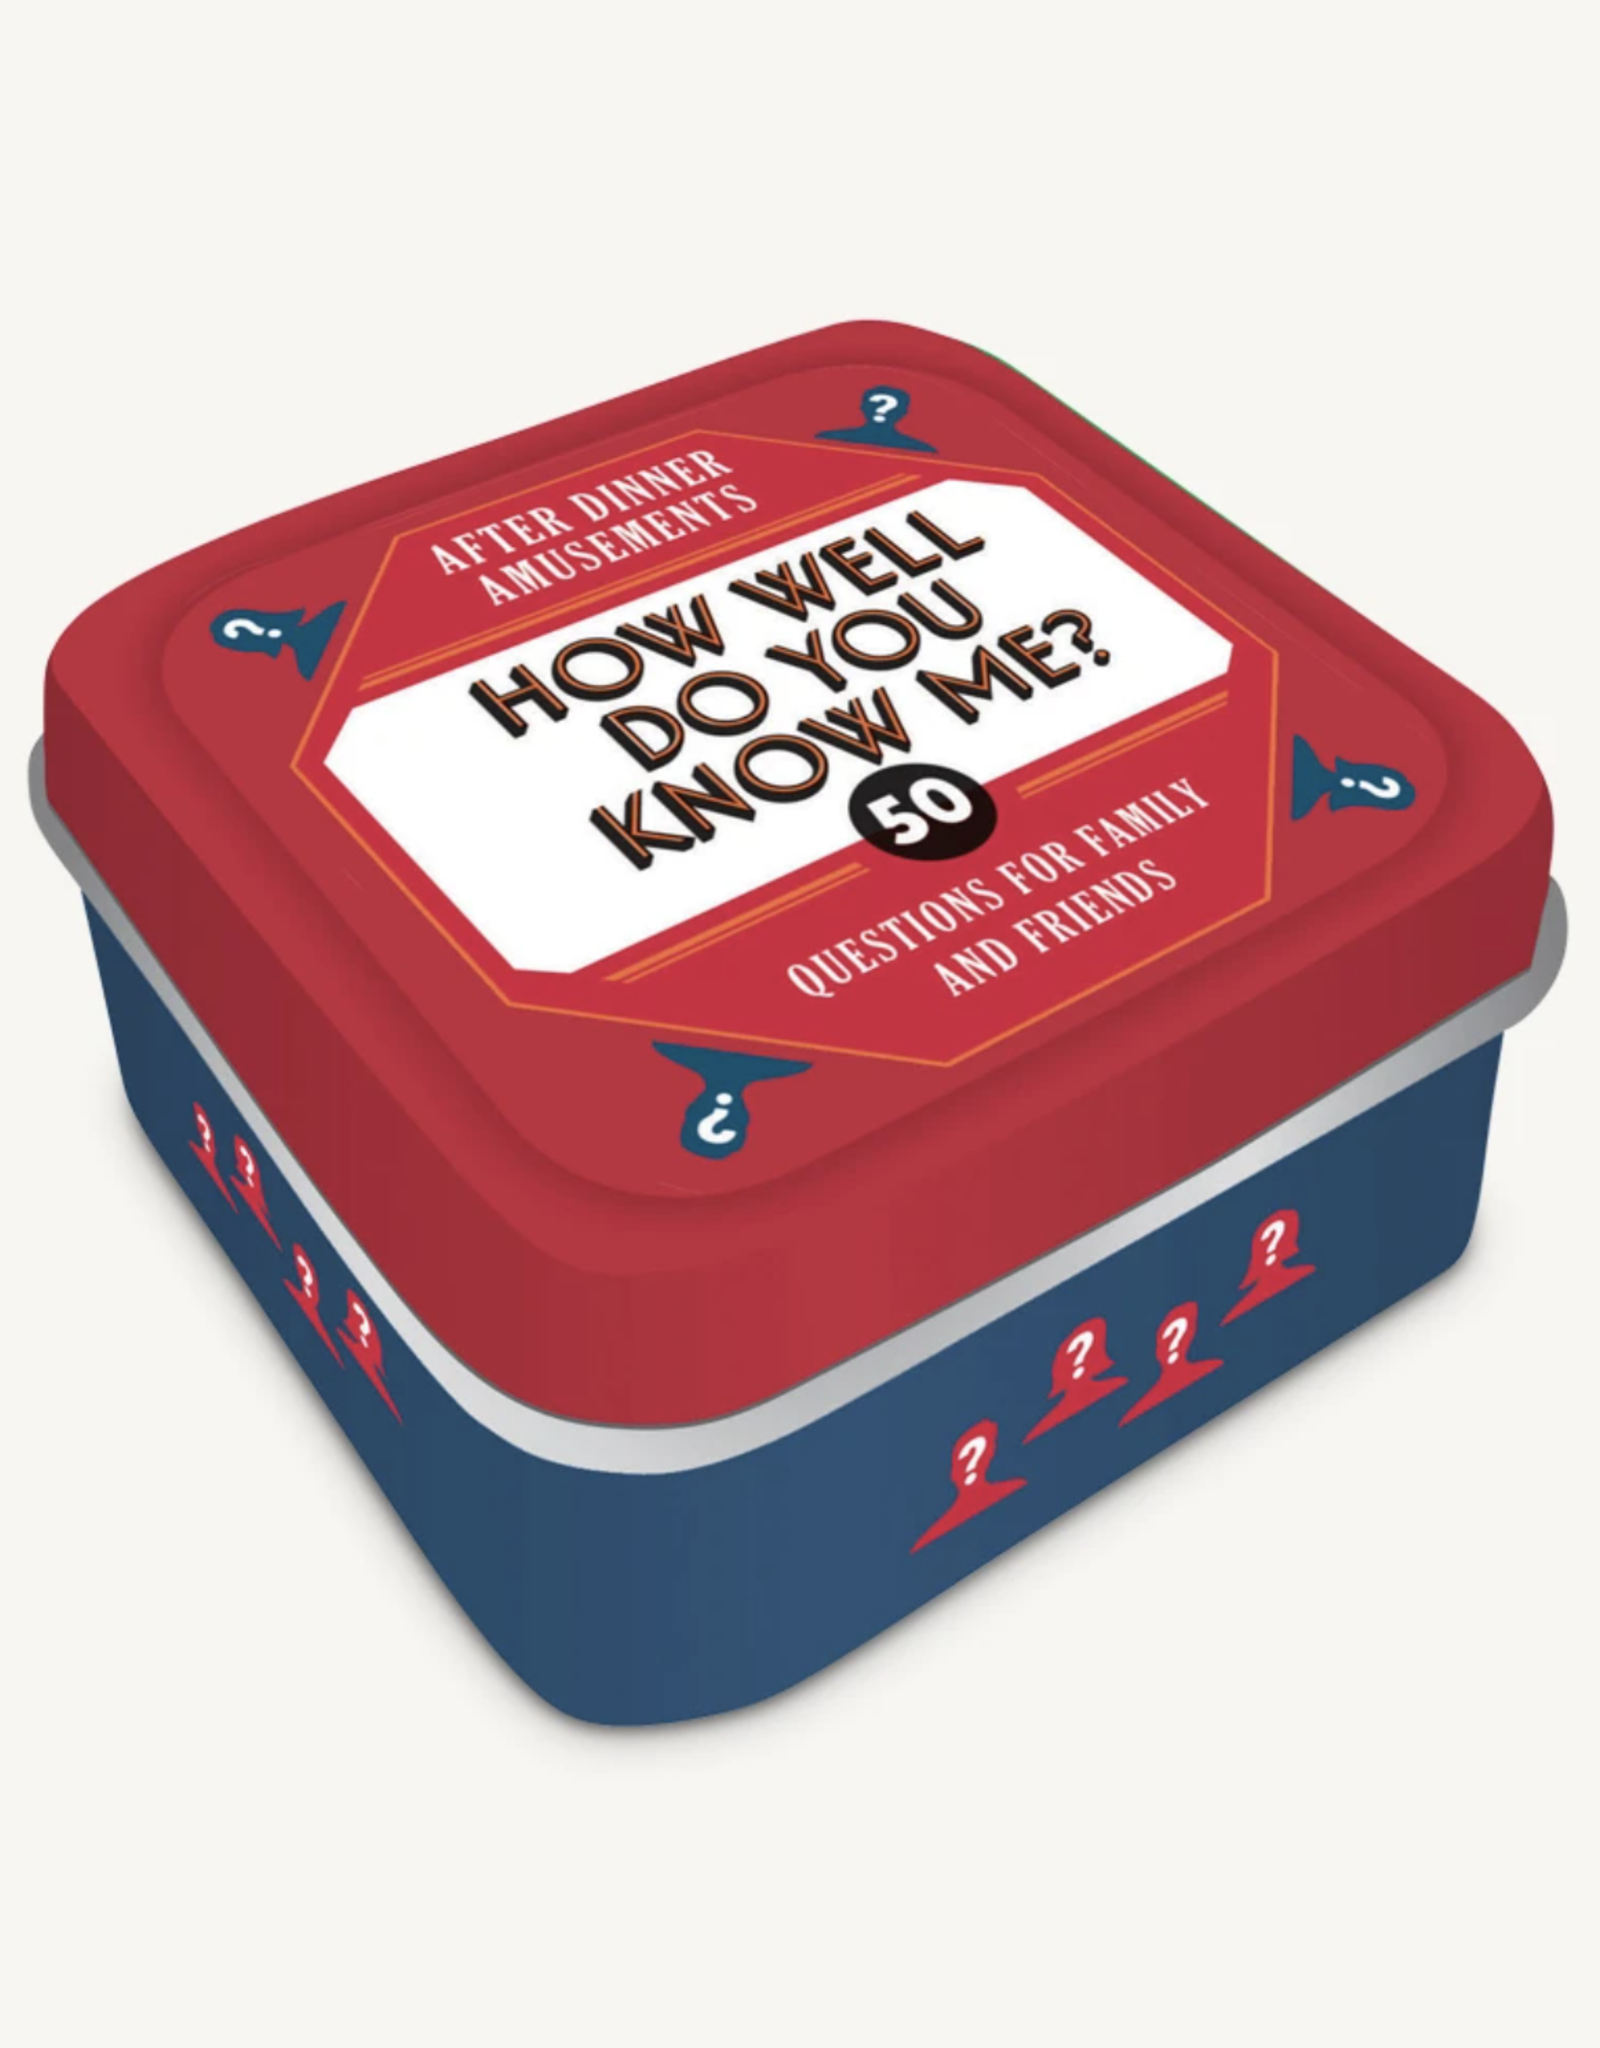 Game Tins - How Well Do You Know Me?